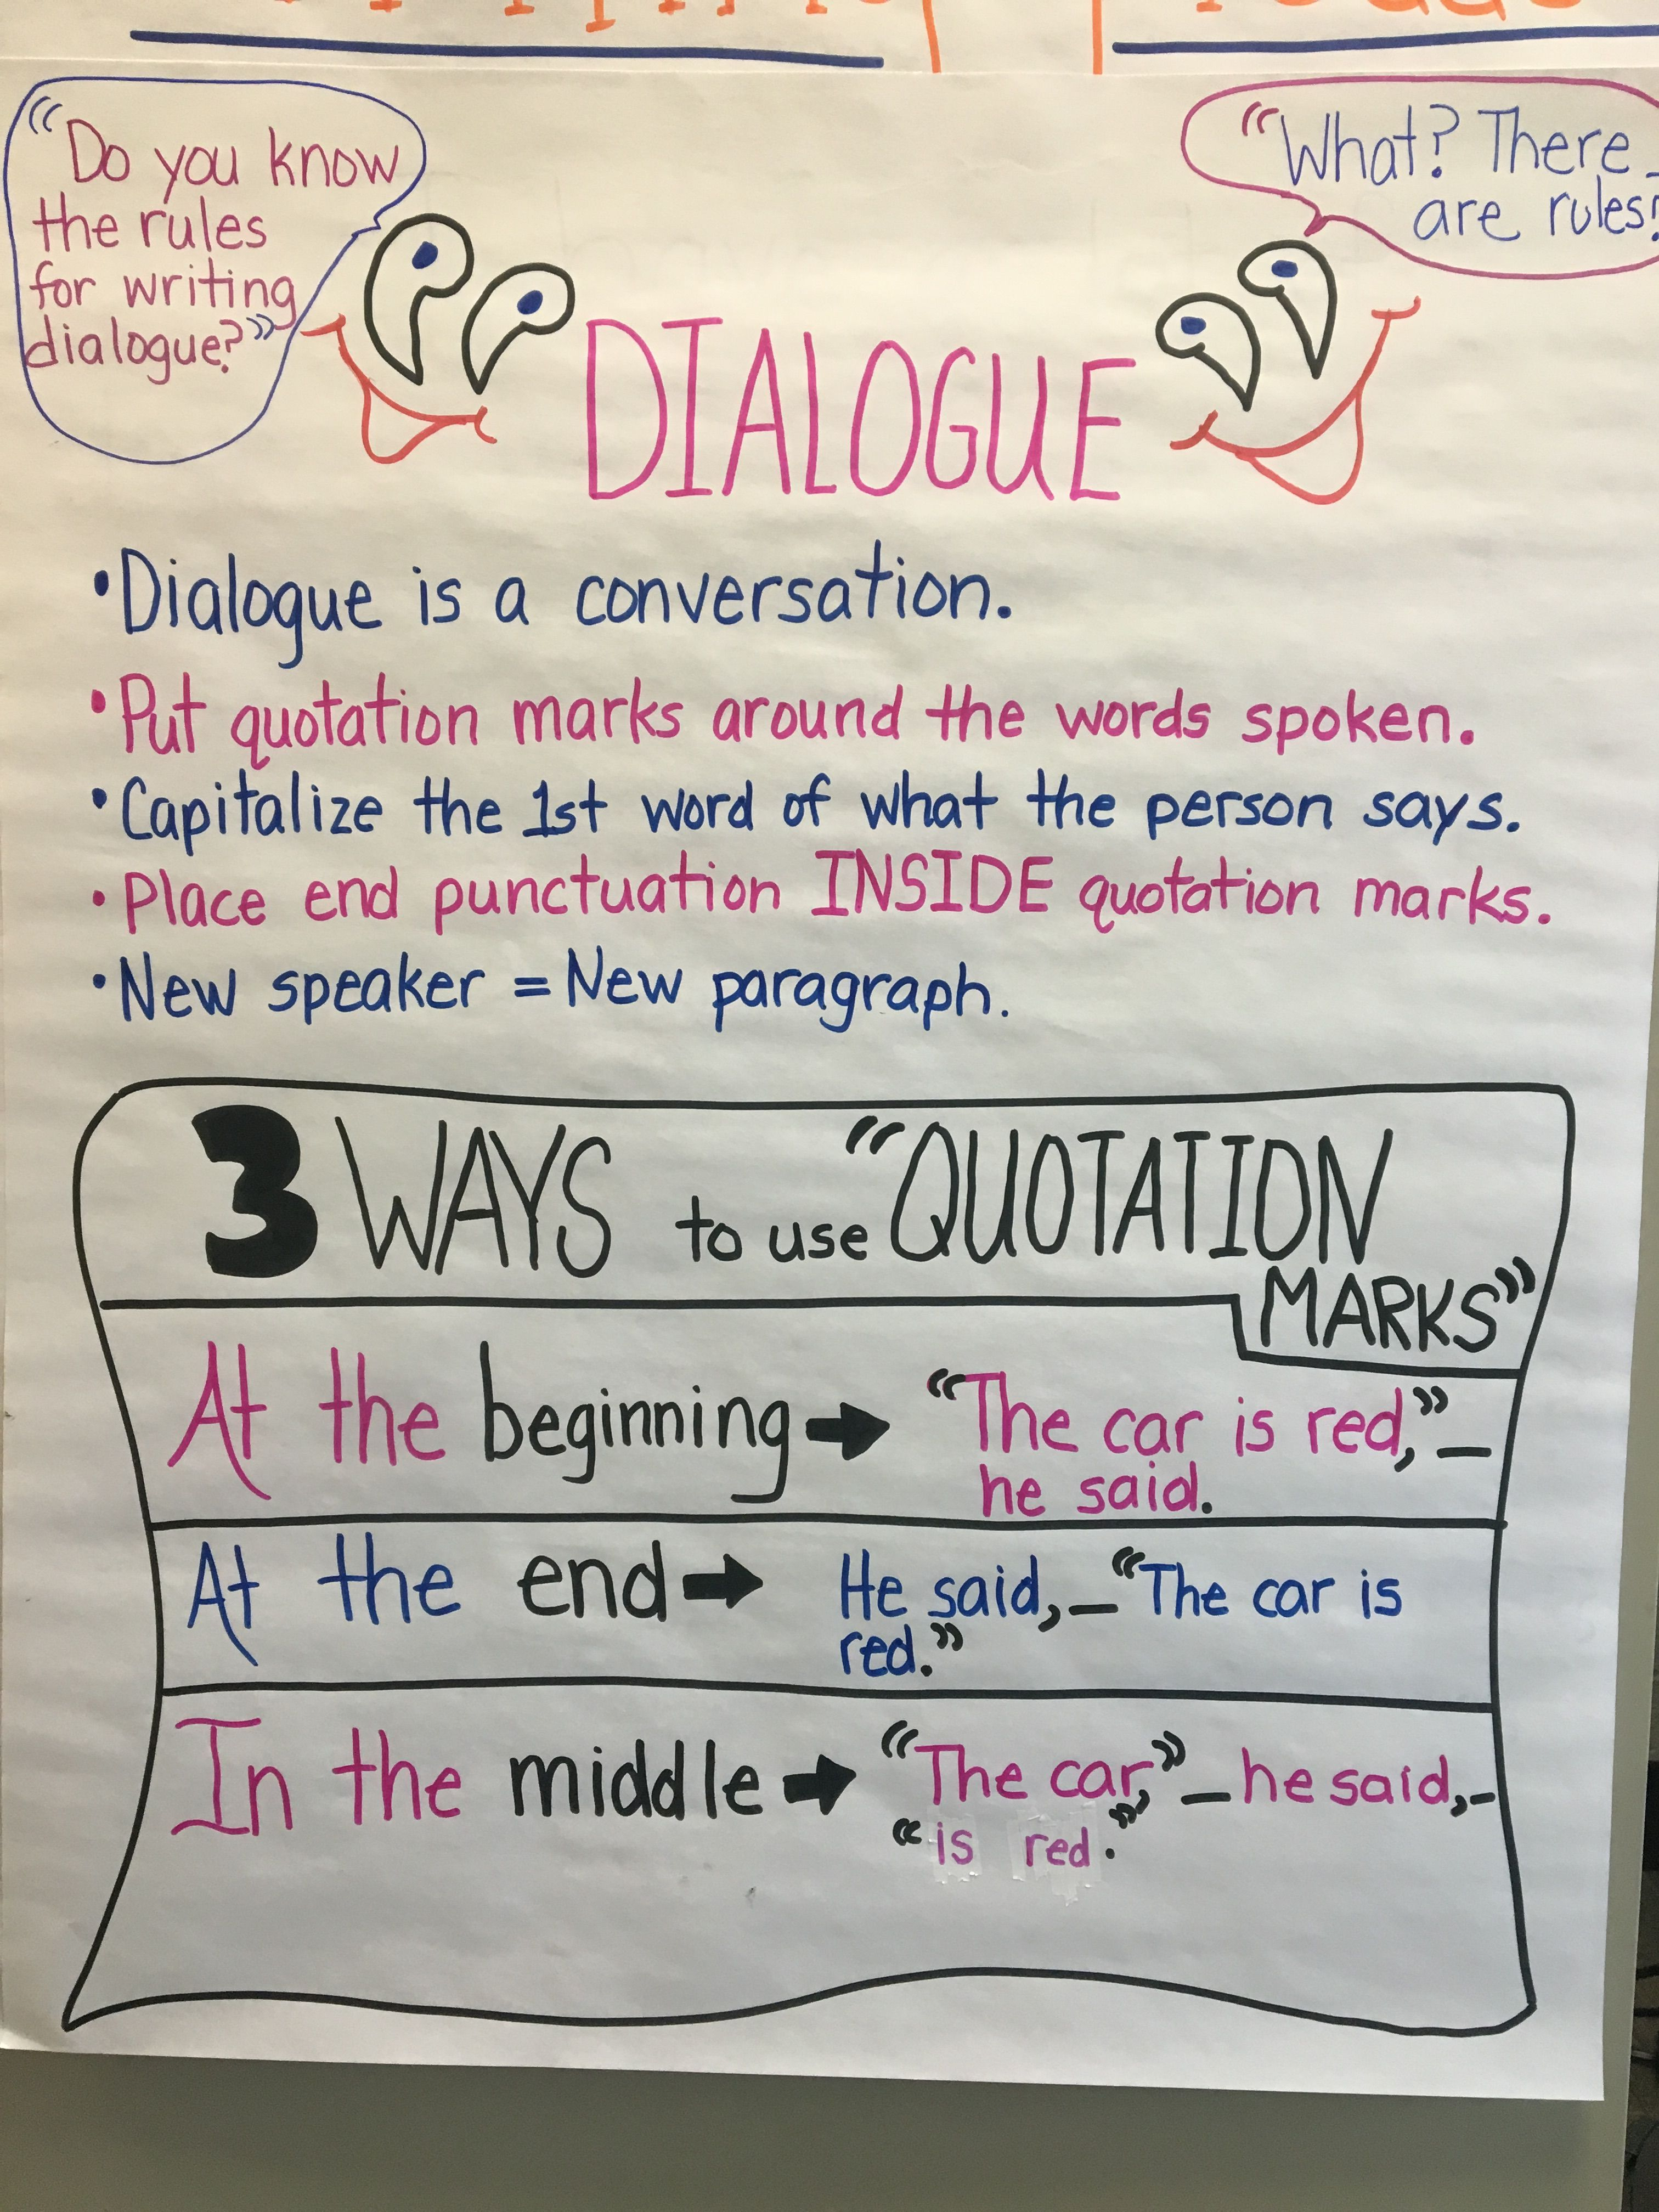 Quotation Marks Rules Anchor Chart